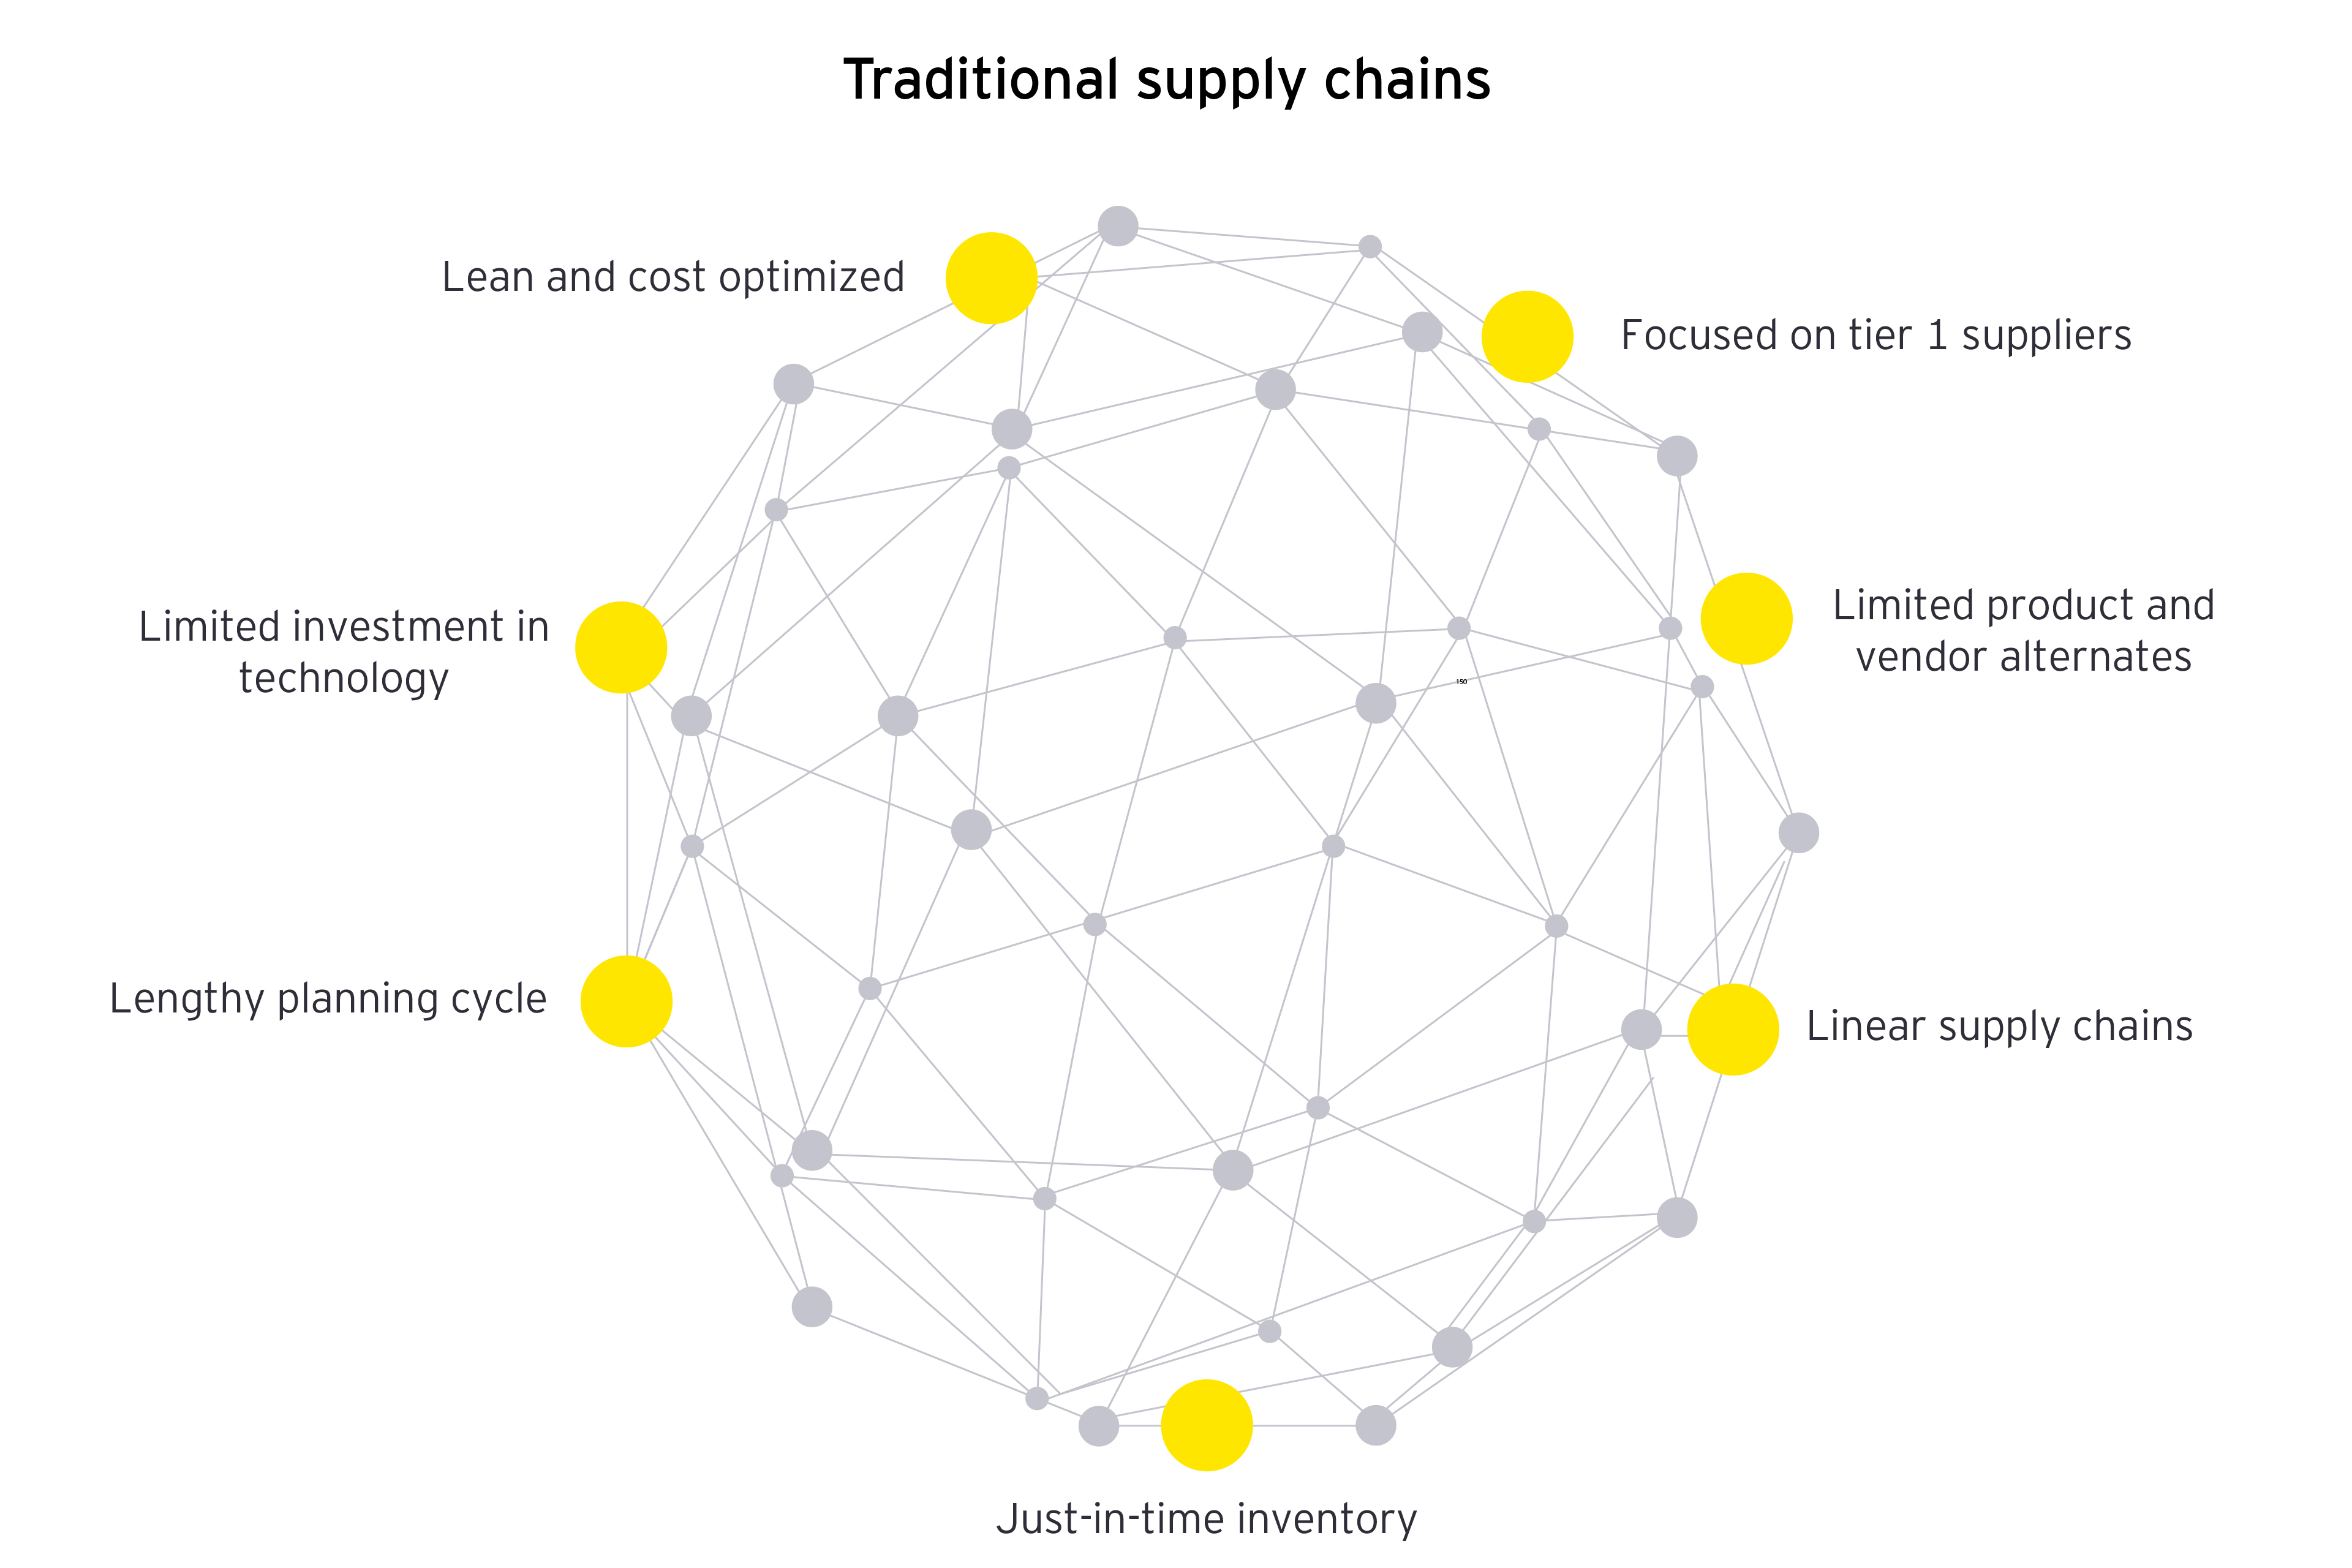 Traditional supply chains